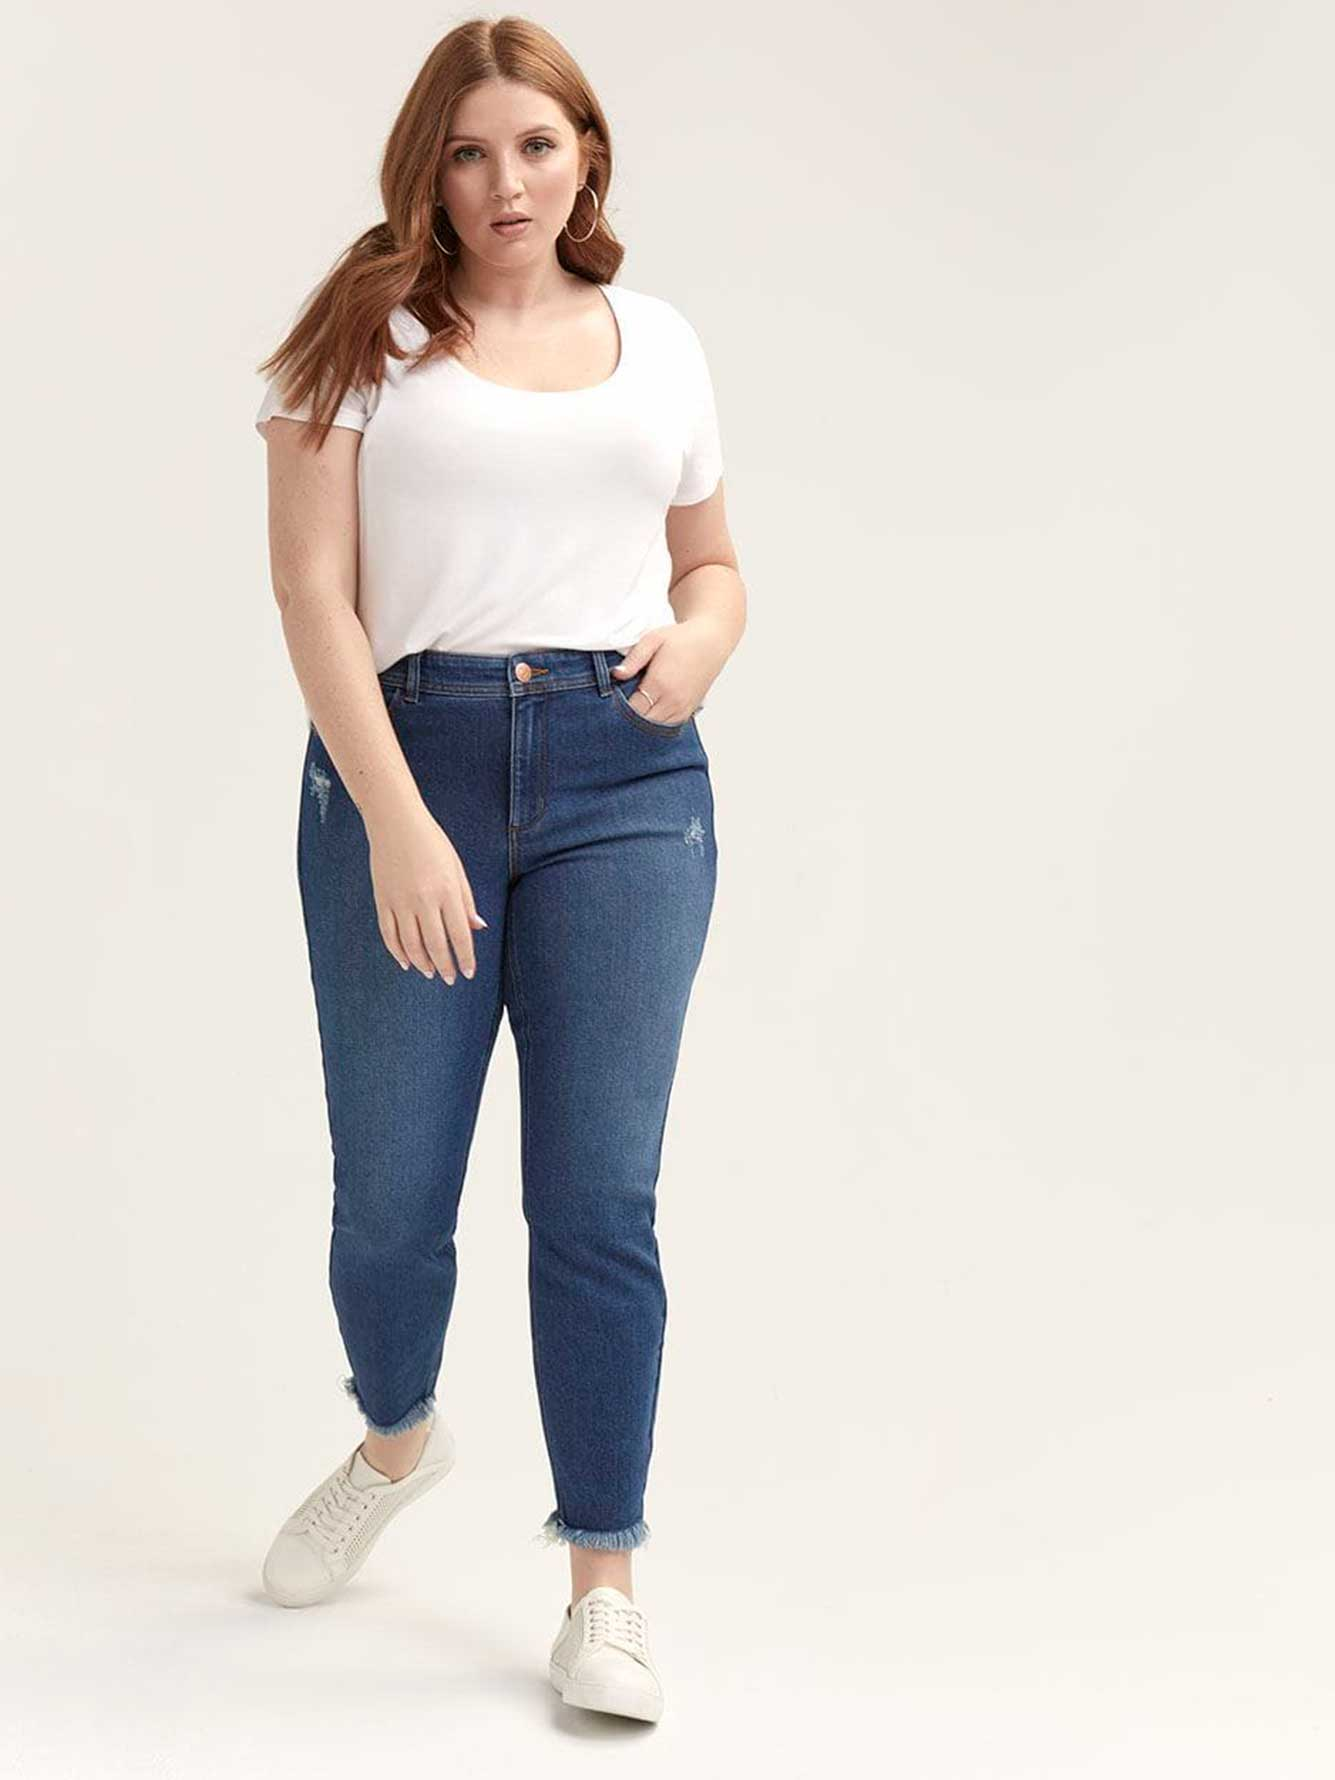 Authentic Ankle Skinny Jeans with Raw Hem - L&L